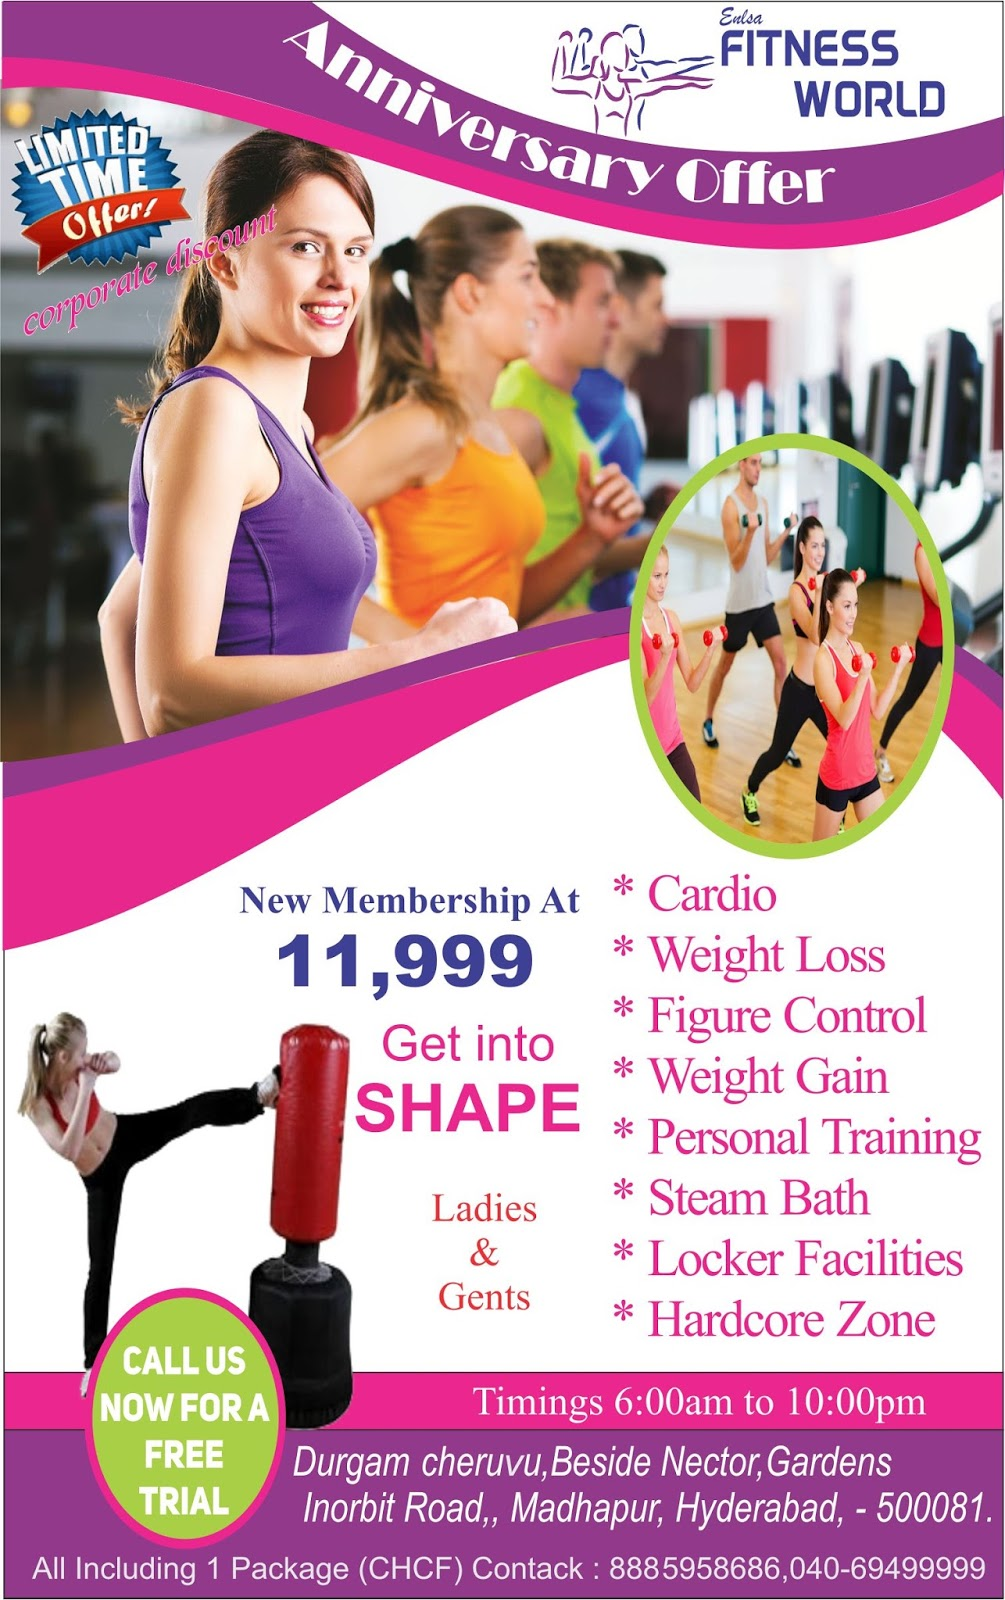 fitness world flyer design harshini creative graphics